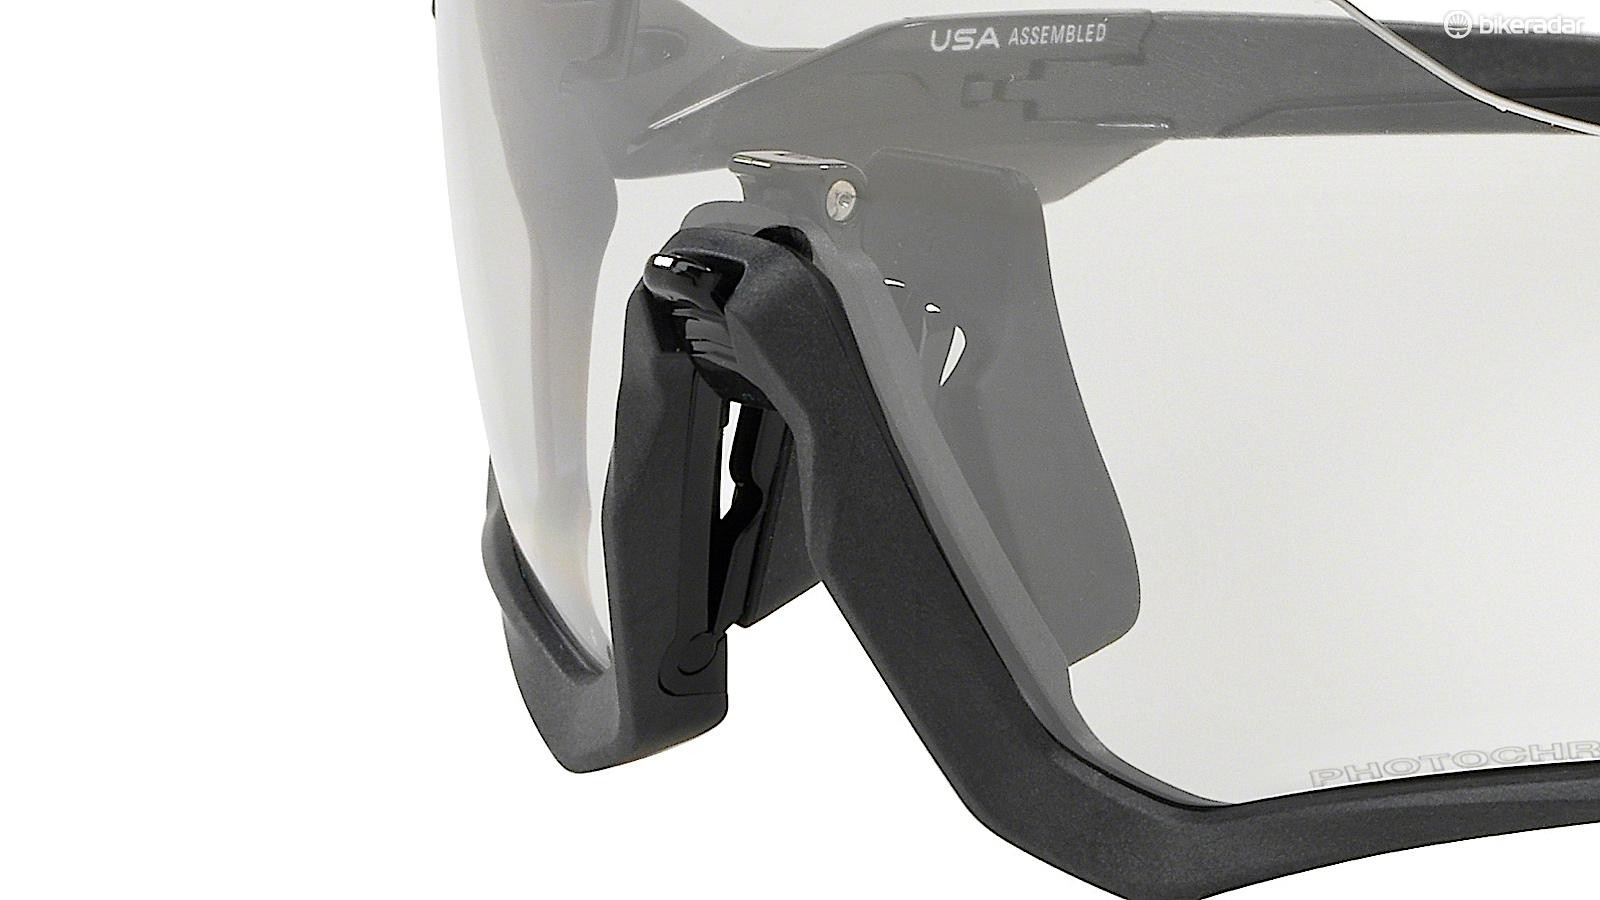 Pivoting the nosepiece away from the frame allows for more airflow to deal with fogging, Oakley says